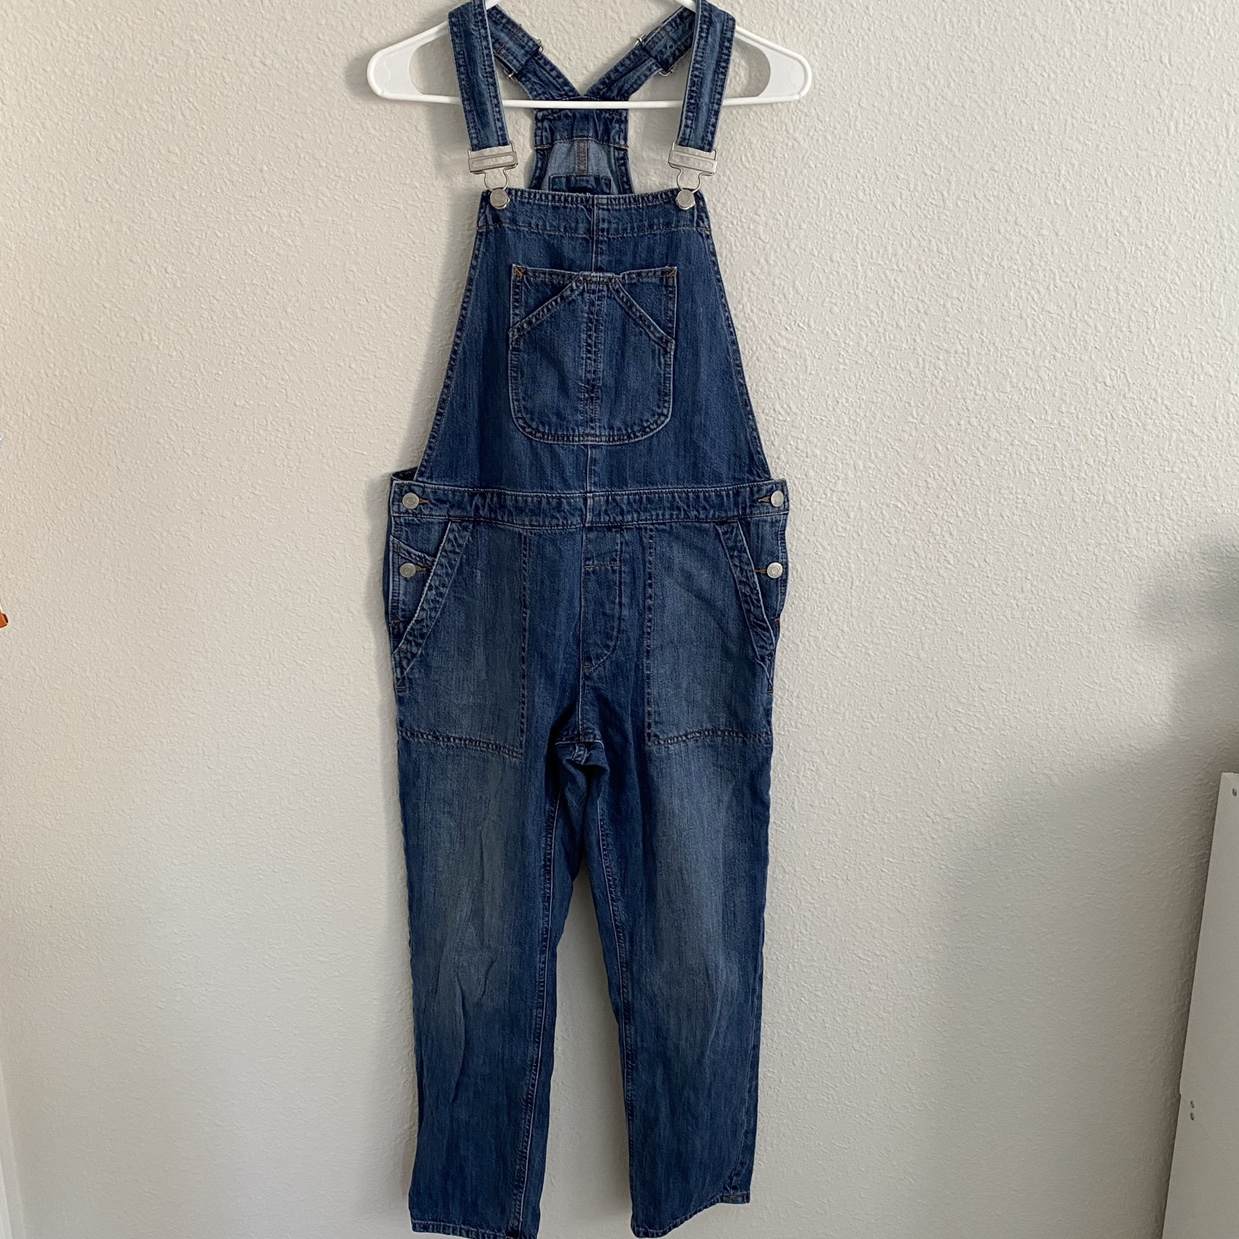 Product Image 1 - vintage gap denim overalls 💙  these